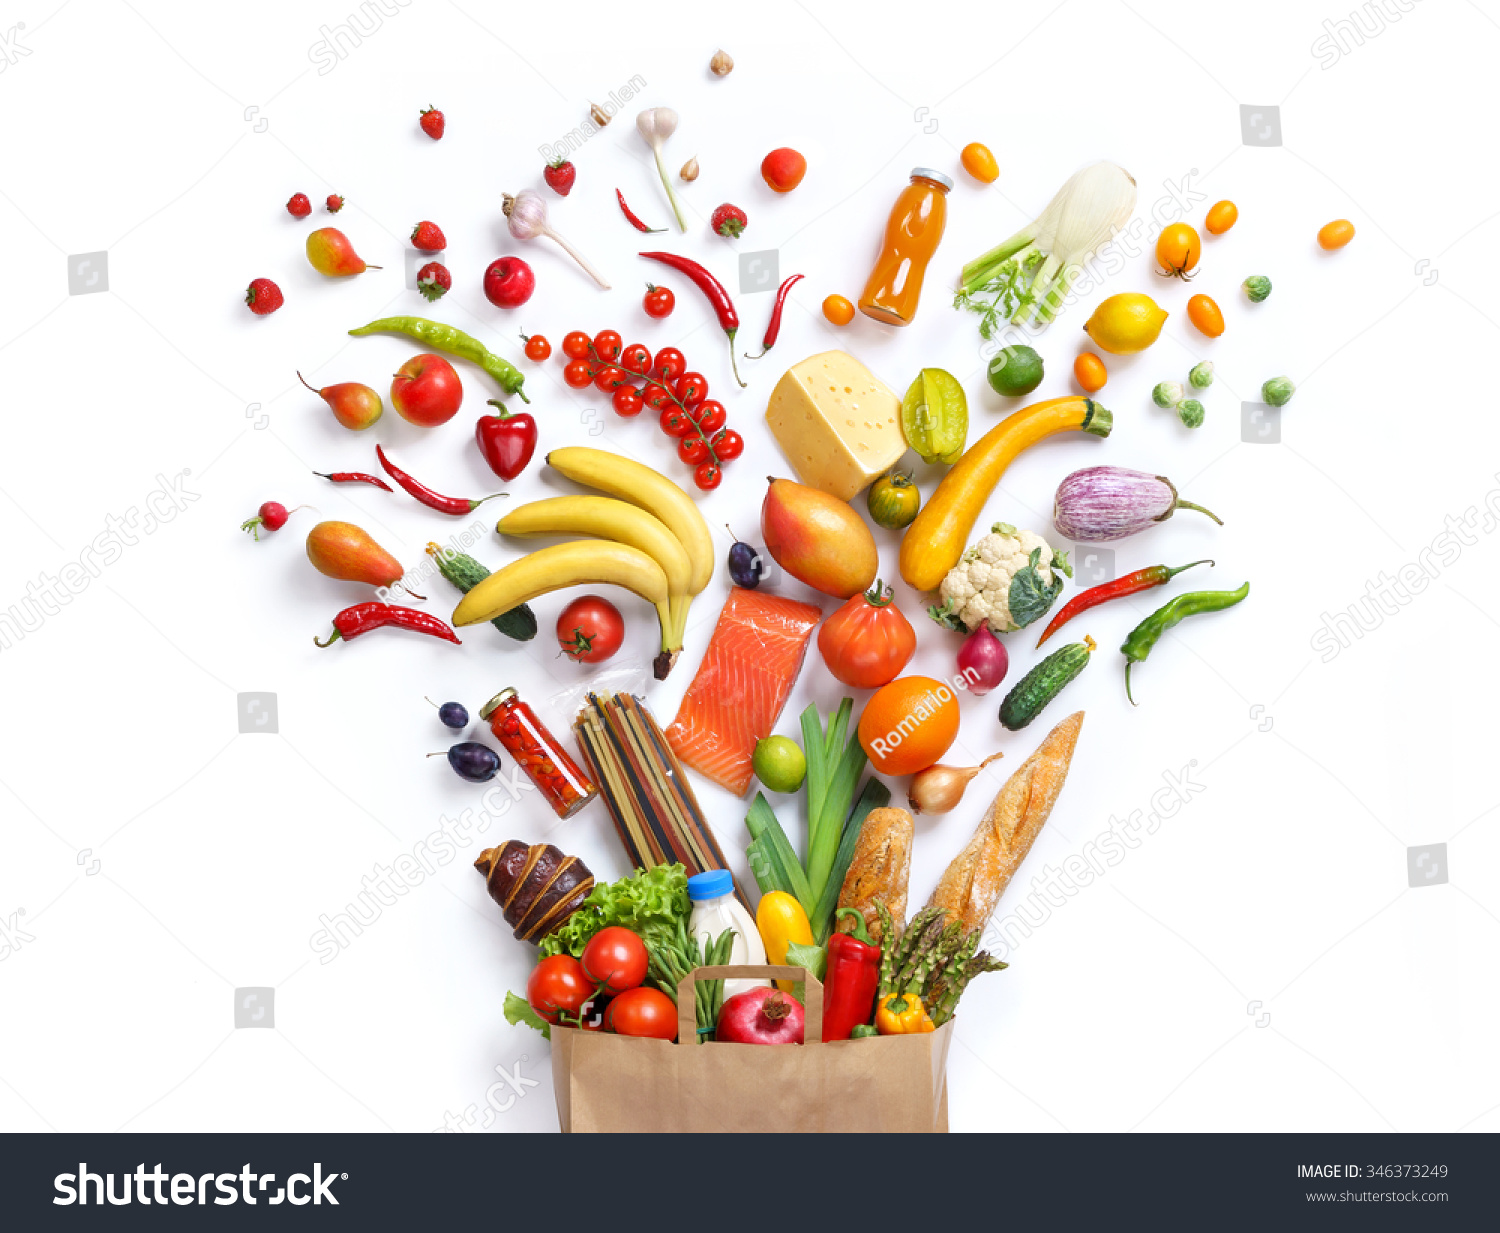 Healthy Eating Background / Studio Photography Of Different Fruits And Vegetables On White ...